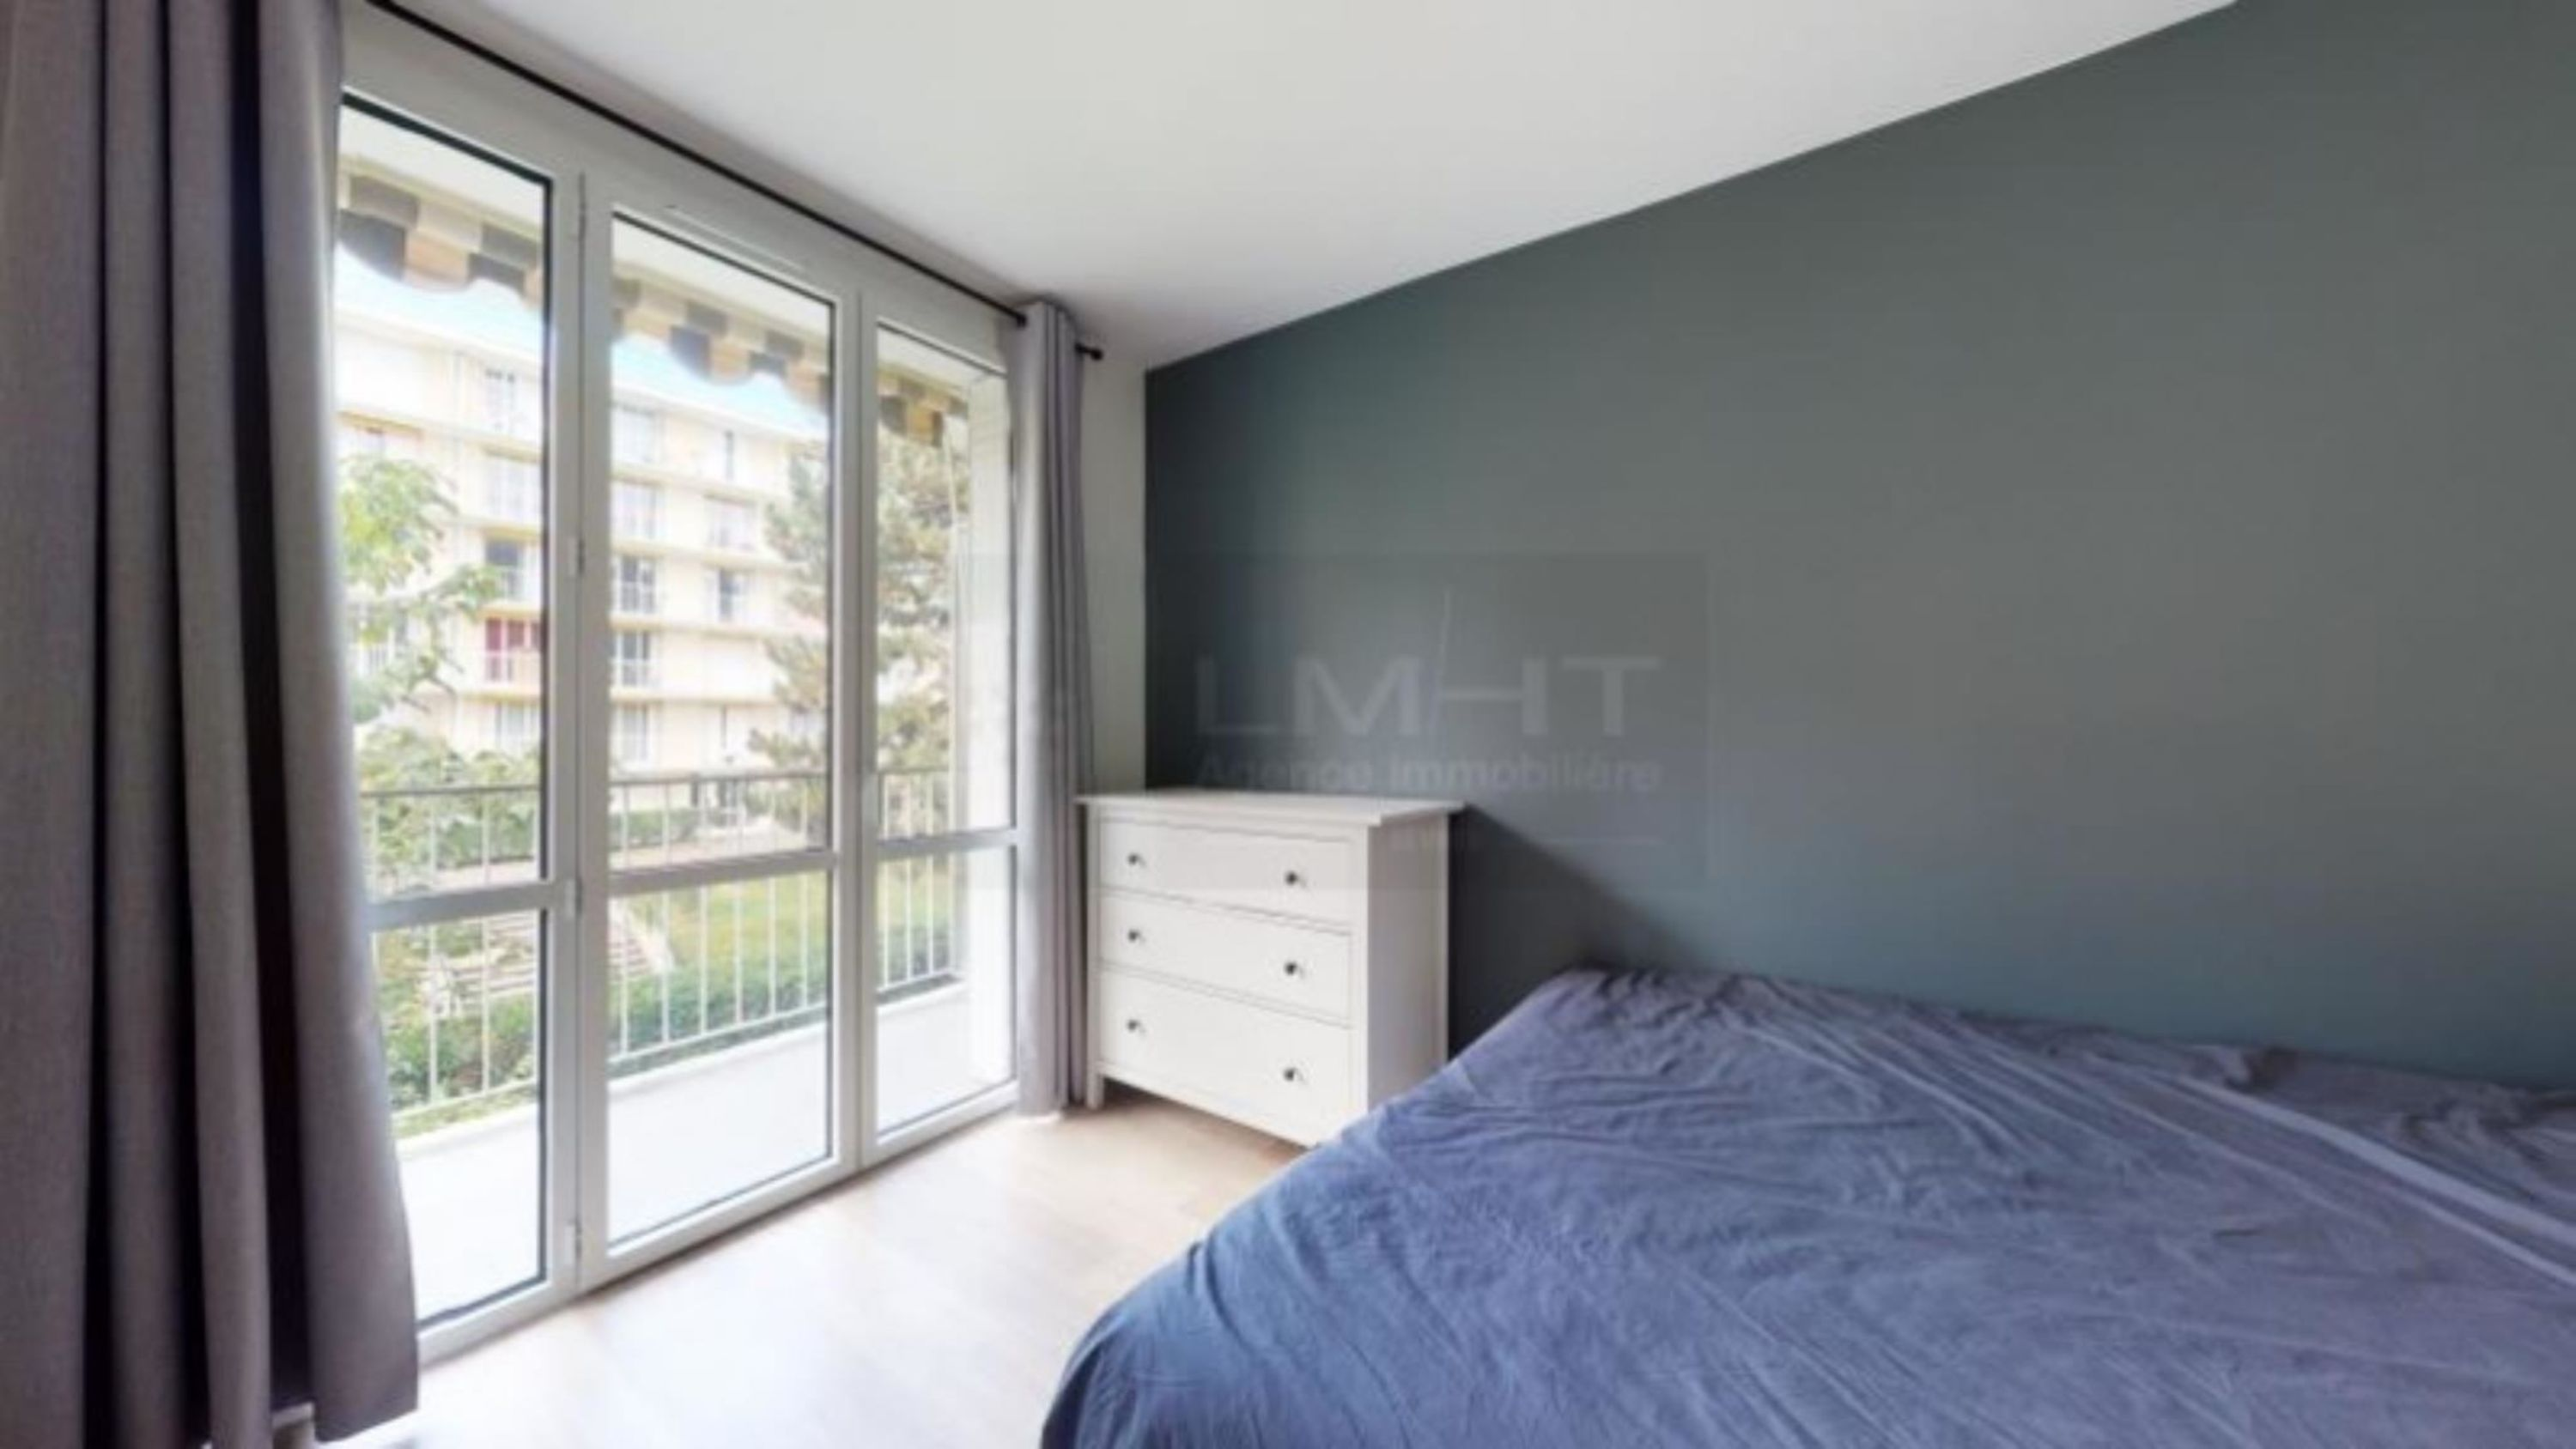 agence immobilière sevres 92 le chesnay 78 achat vente location appartement maison immobilier LMHT ANF SUYOGJNS